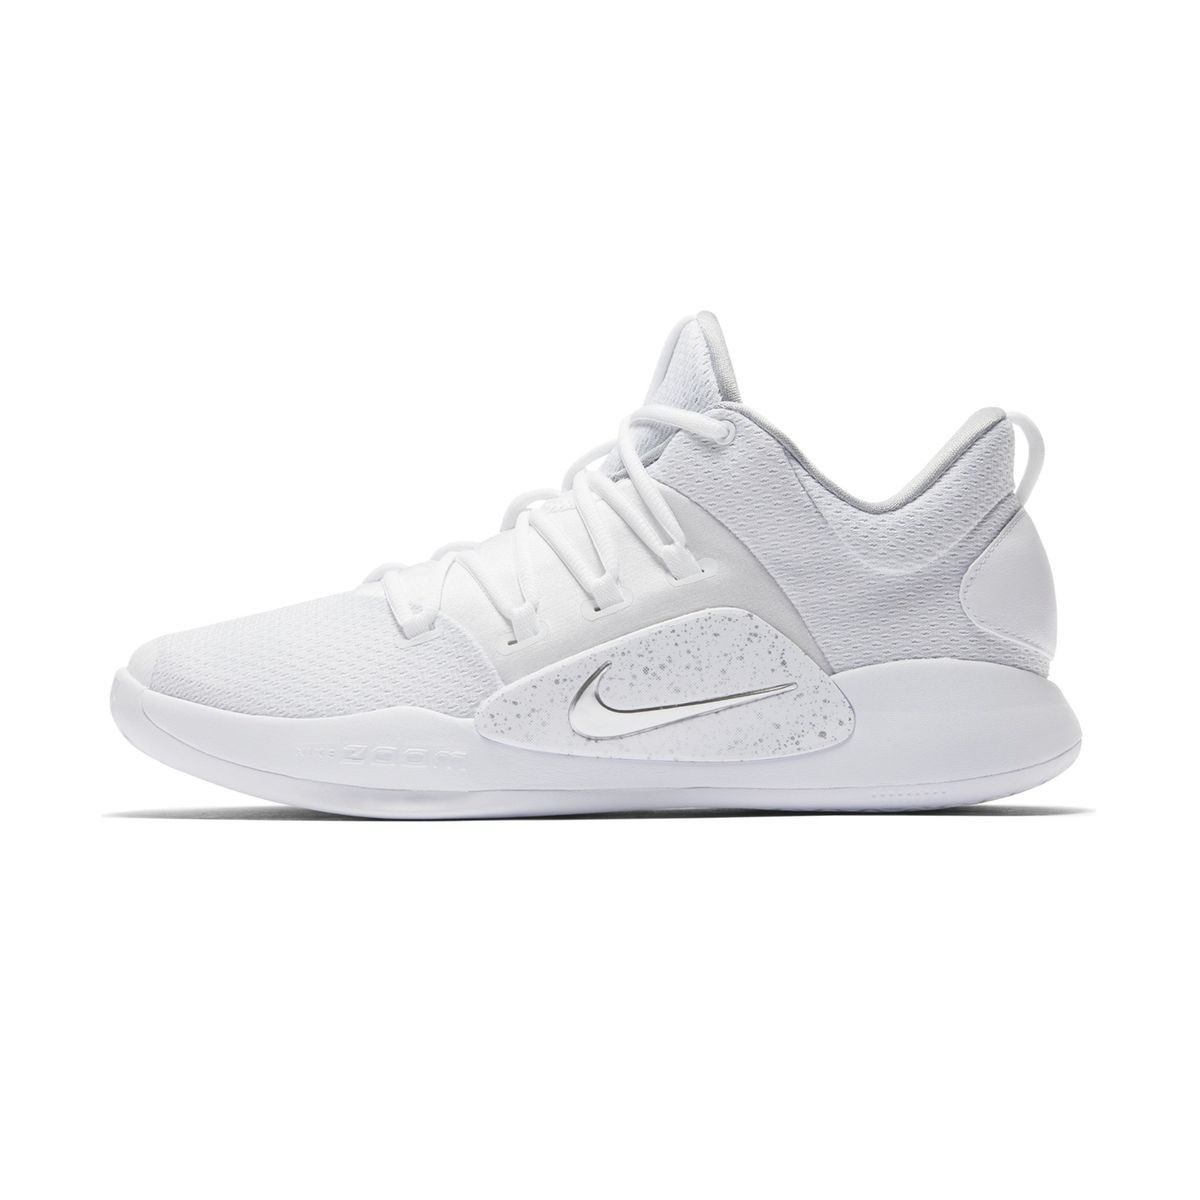 Chaussures Basketball Nike Hyperdunk X Low Blanc - Taille ...